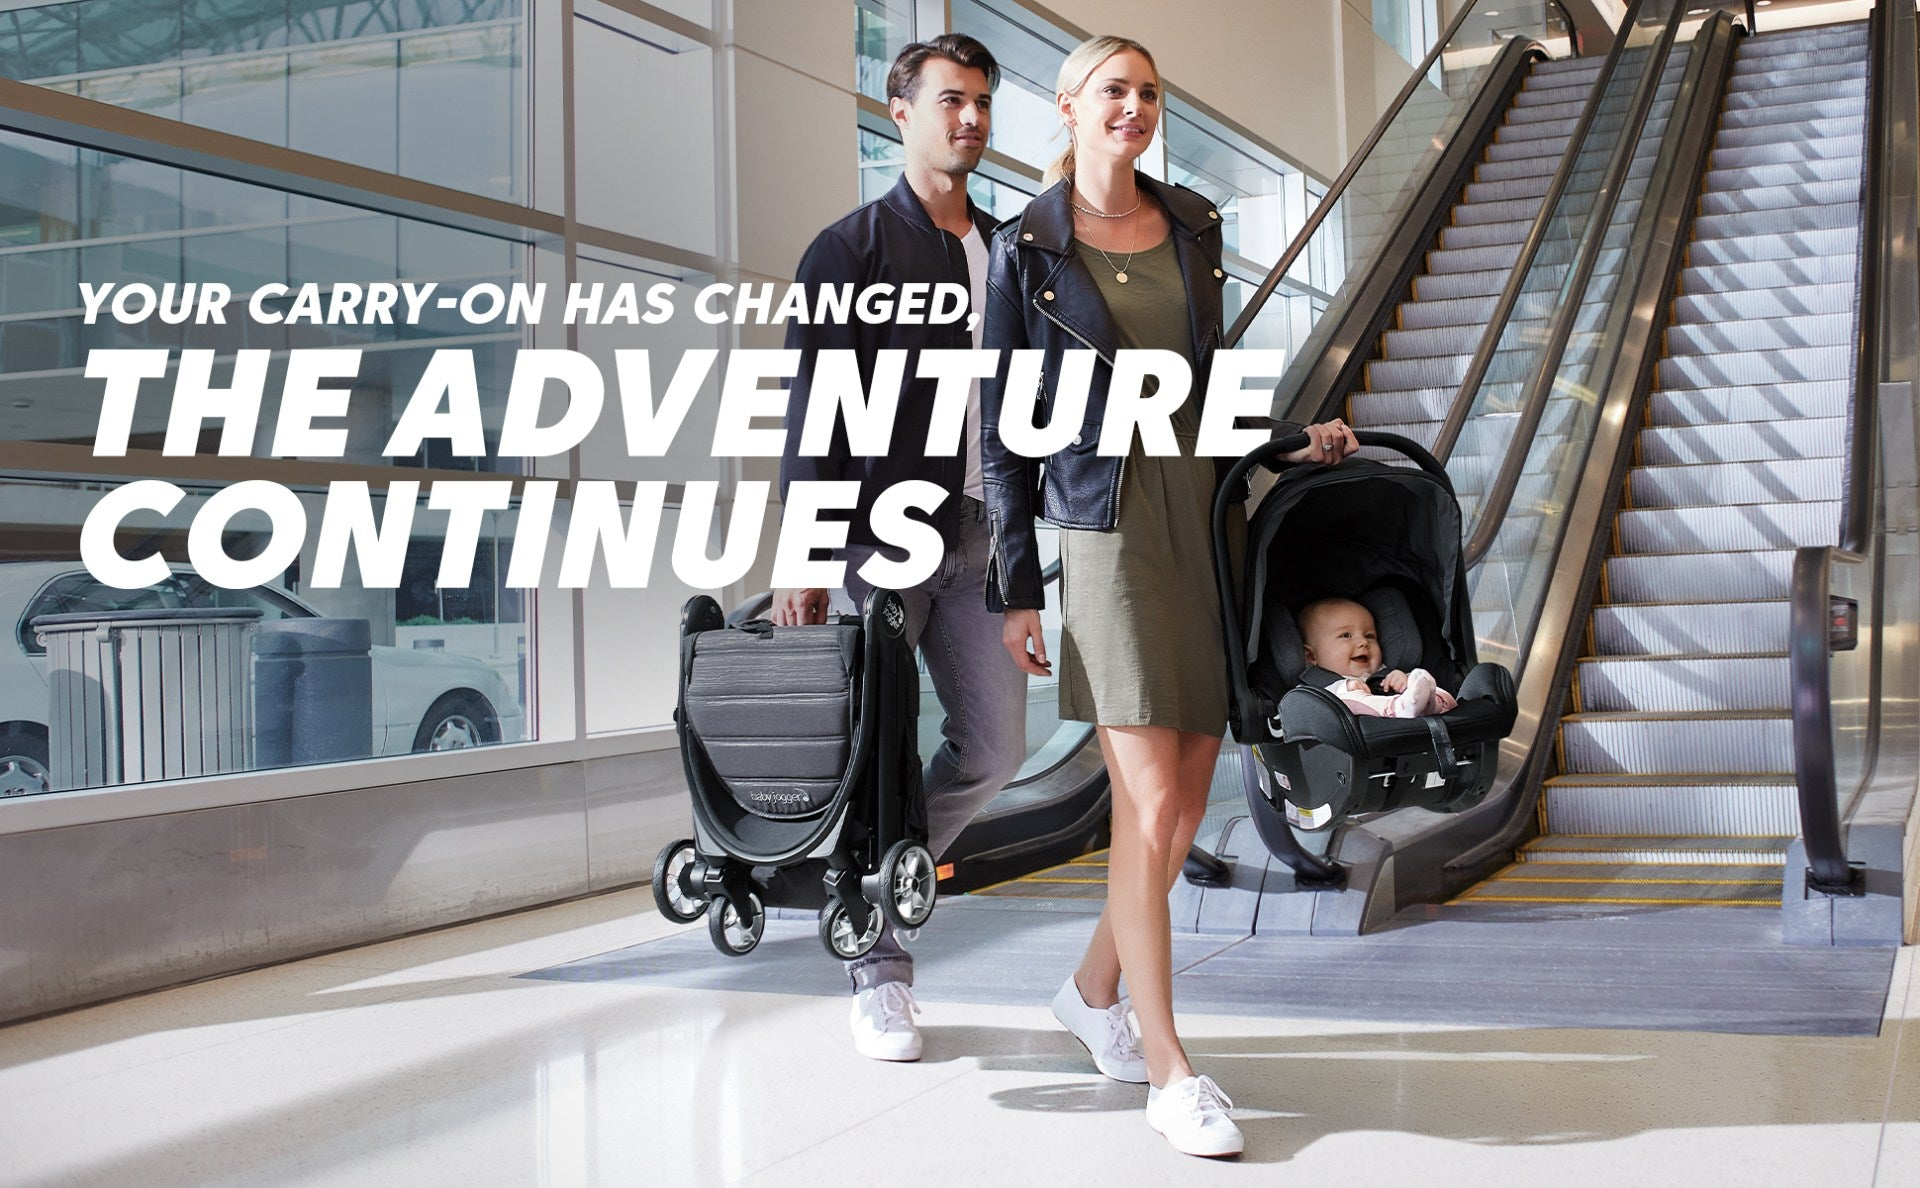 Your Carry-On Has Changed, The Adventure Continues